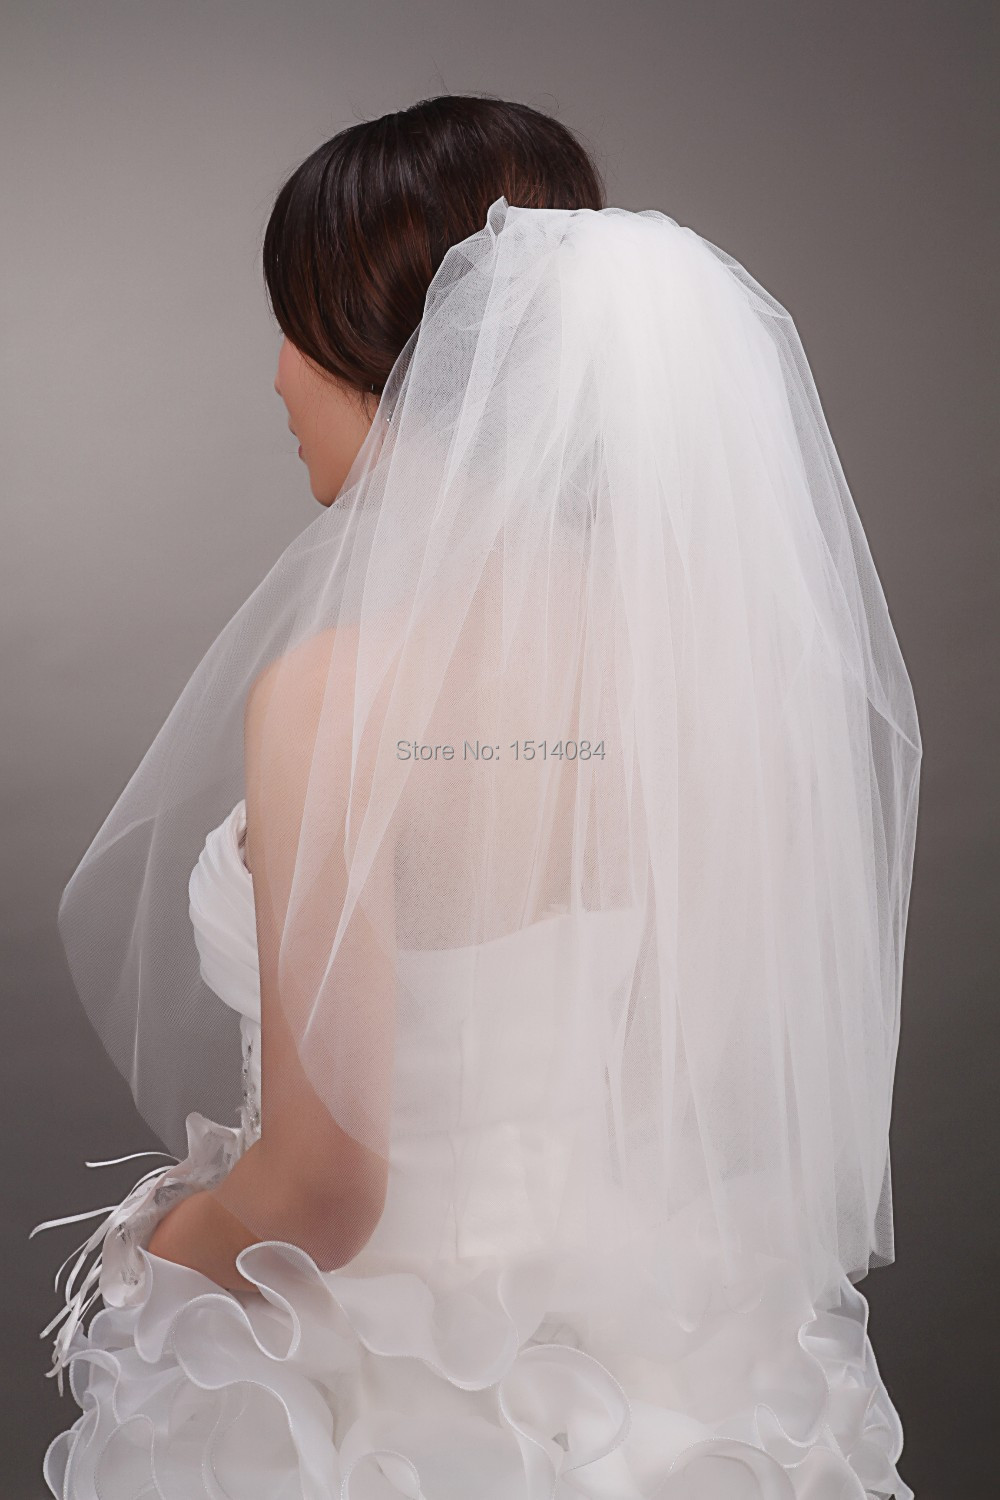 Free Shipping Hot Sale High Quality Cheap Wedding Veils WhiteIvory Two Layer Bridal Veils TS008